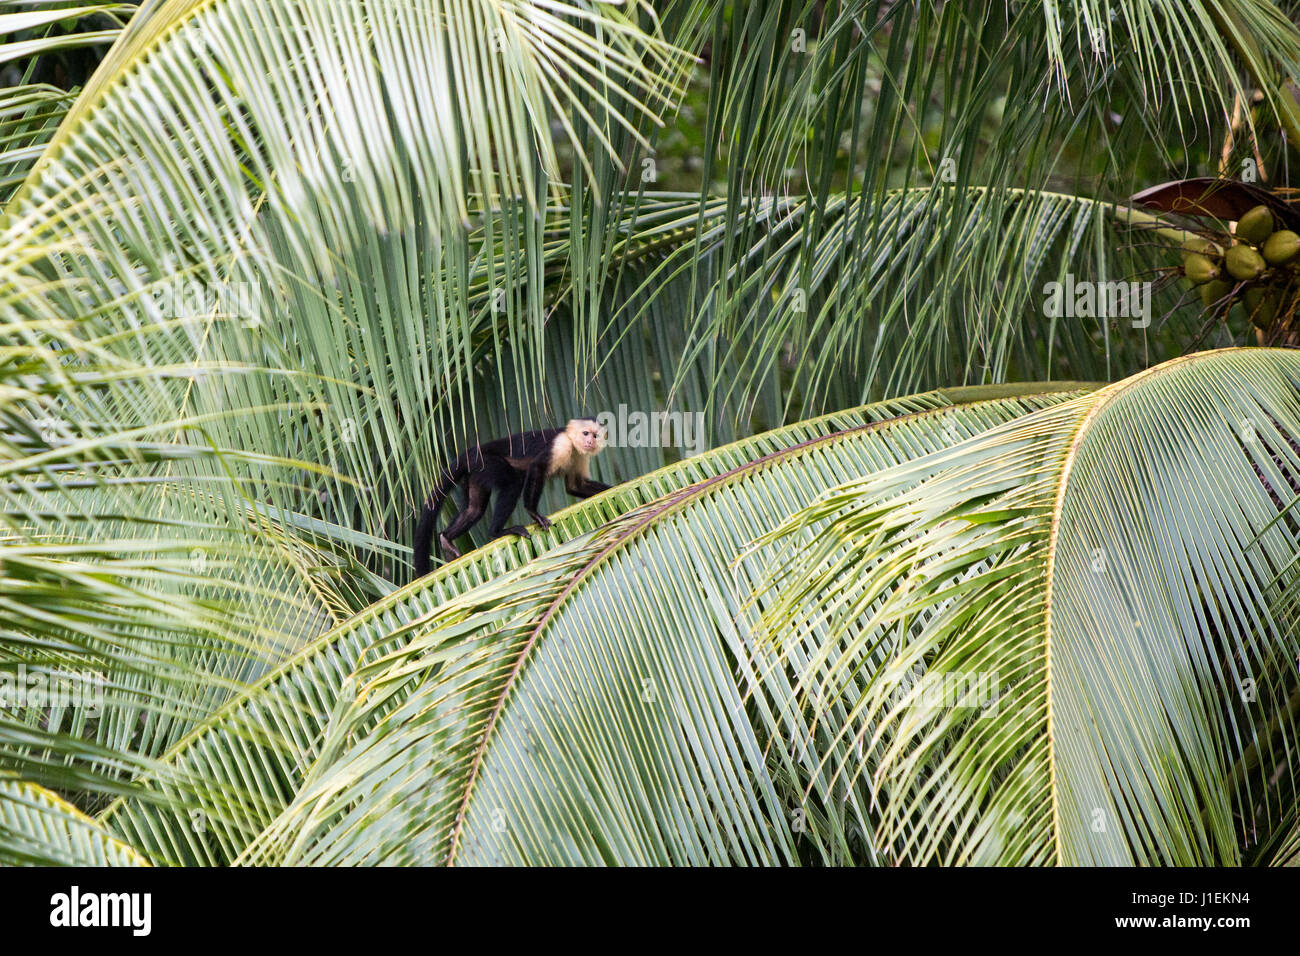 A white-faced capuchin monkey walks along the spine of a palm frond. - Stock Image